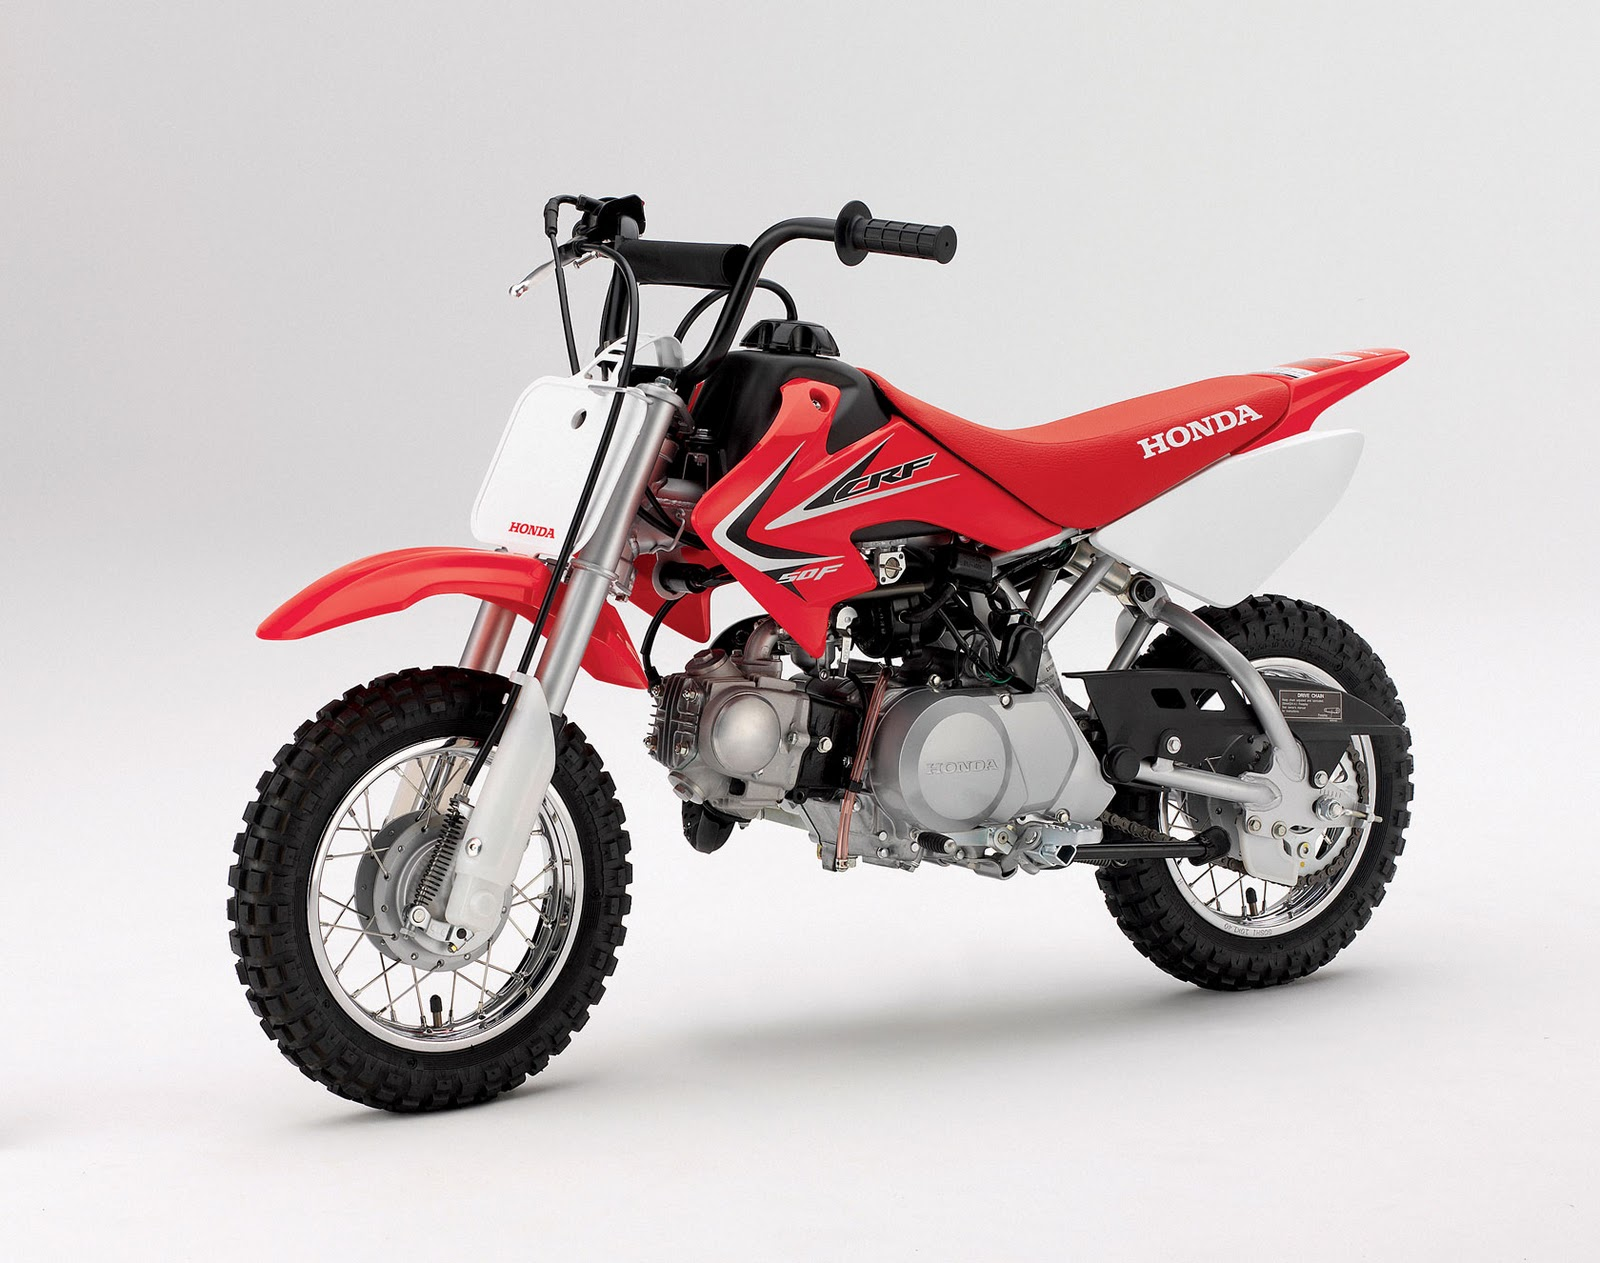 Motorcycle Pictures: Honda CRF 50 F - 2011